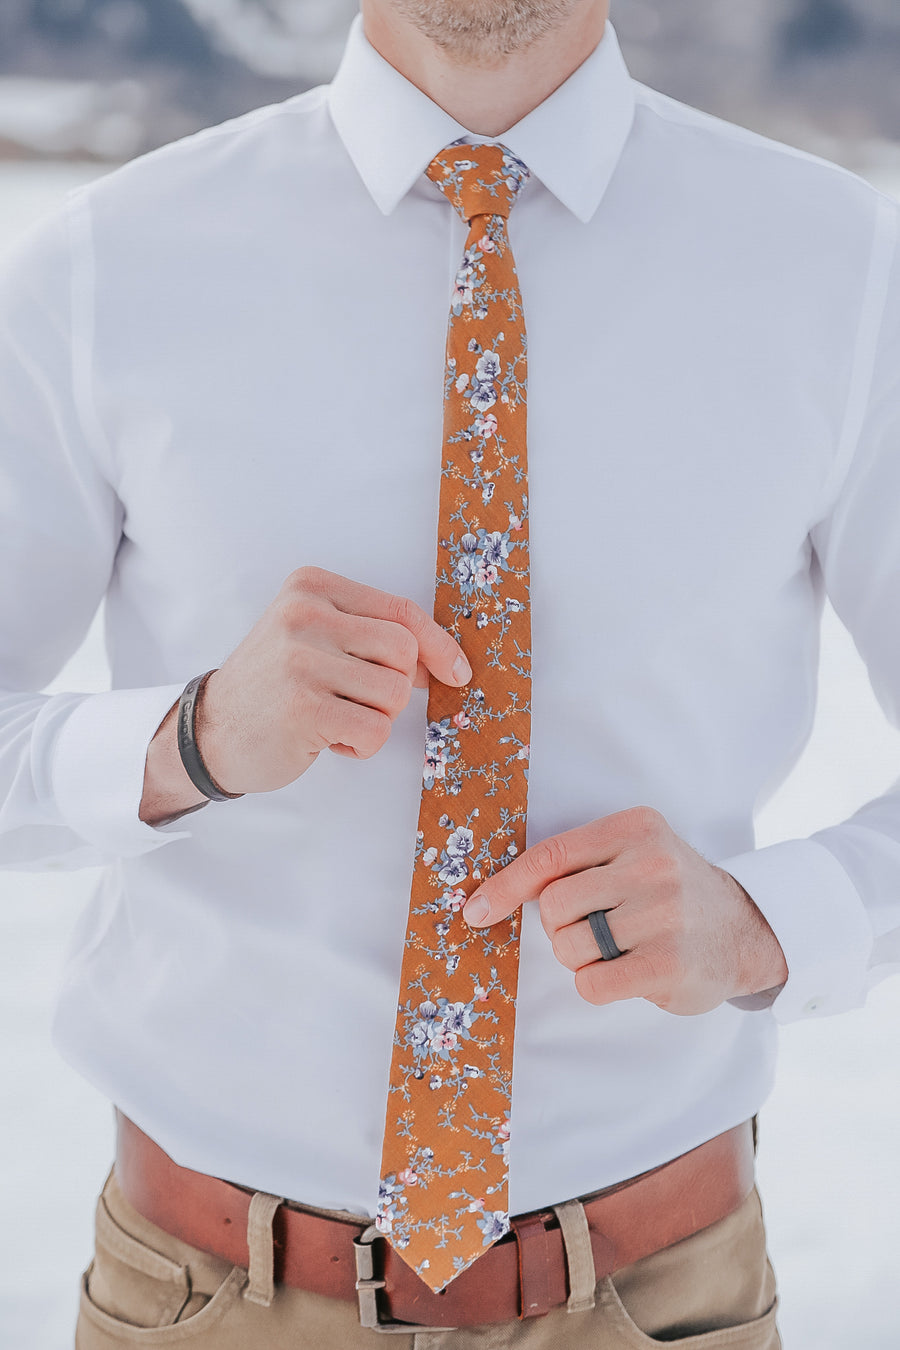 Skinny tie for men, teen tie, linen necktie for men, men's necktie, cotton tie, cool mens necktie, woven tie, father son matching ties, wedding discount on ties, floral tie,